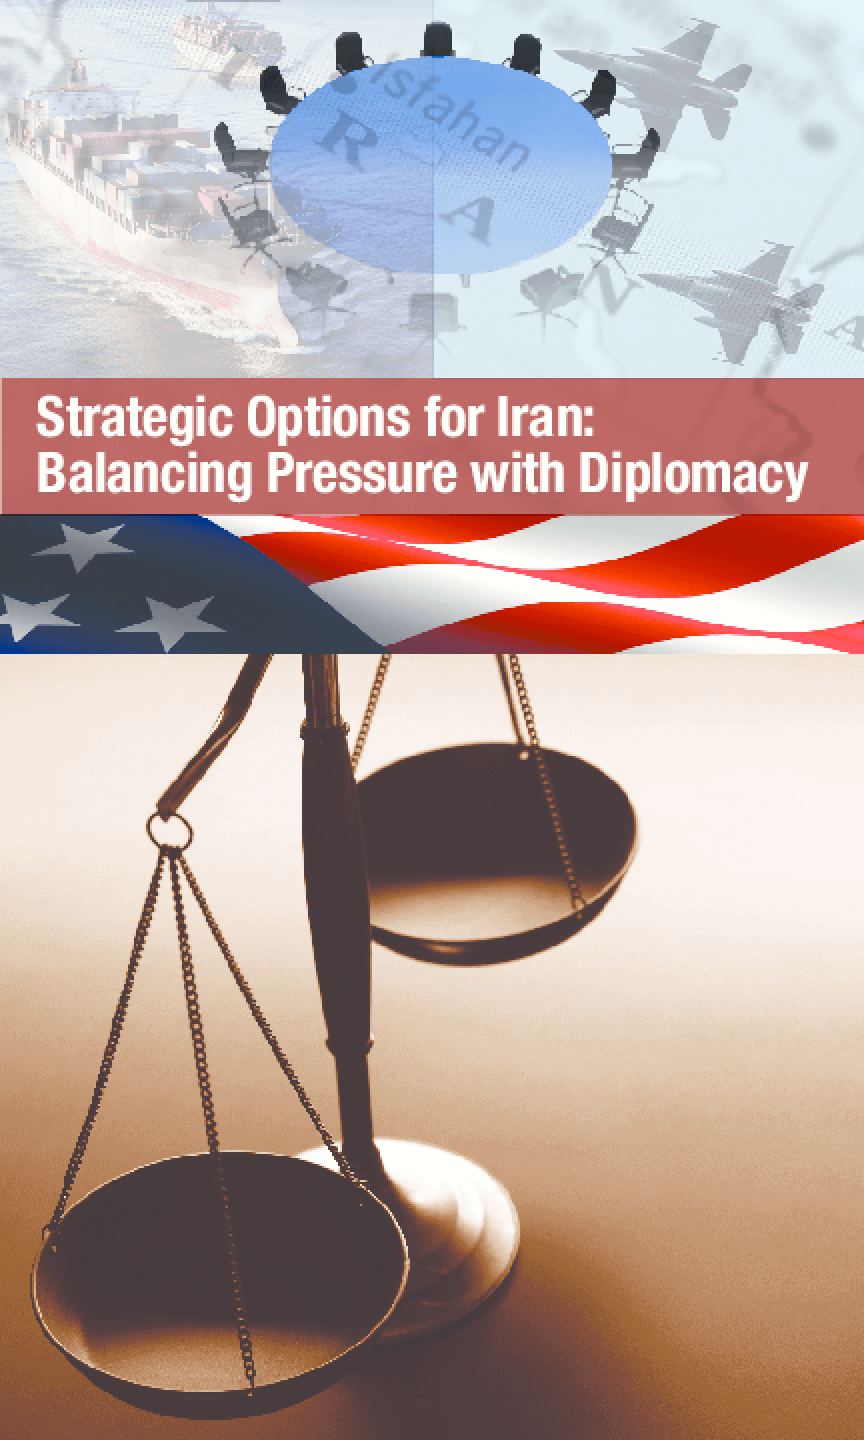 Strategic Options for Iran: Balancing Pressure with Diplomacy